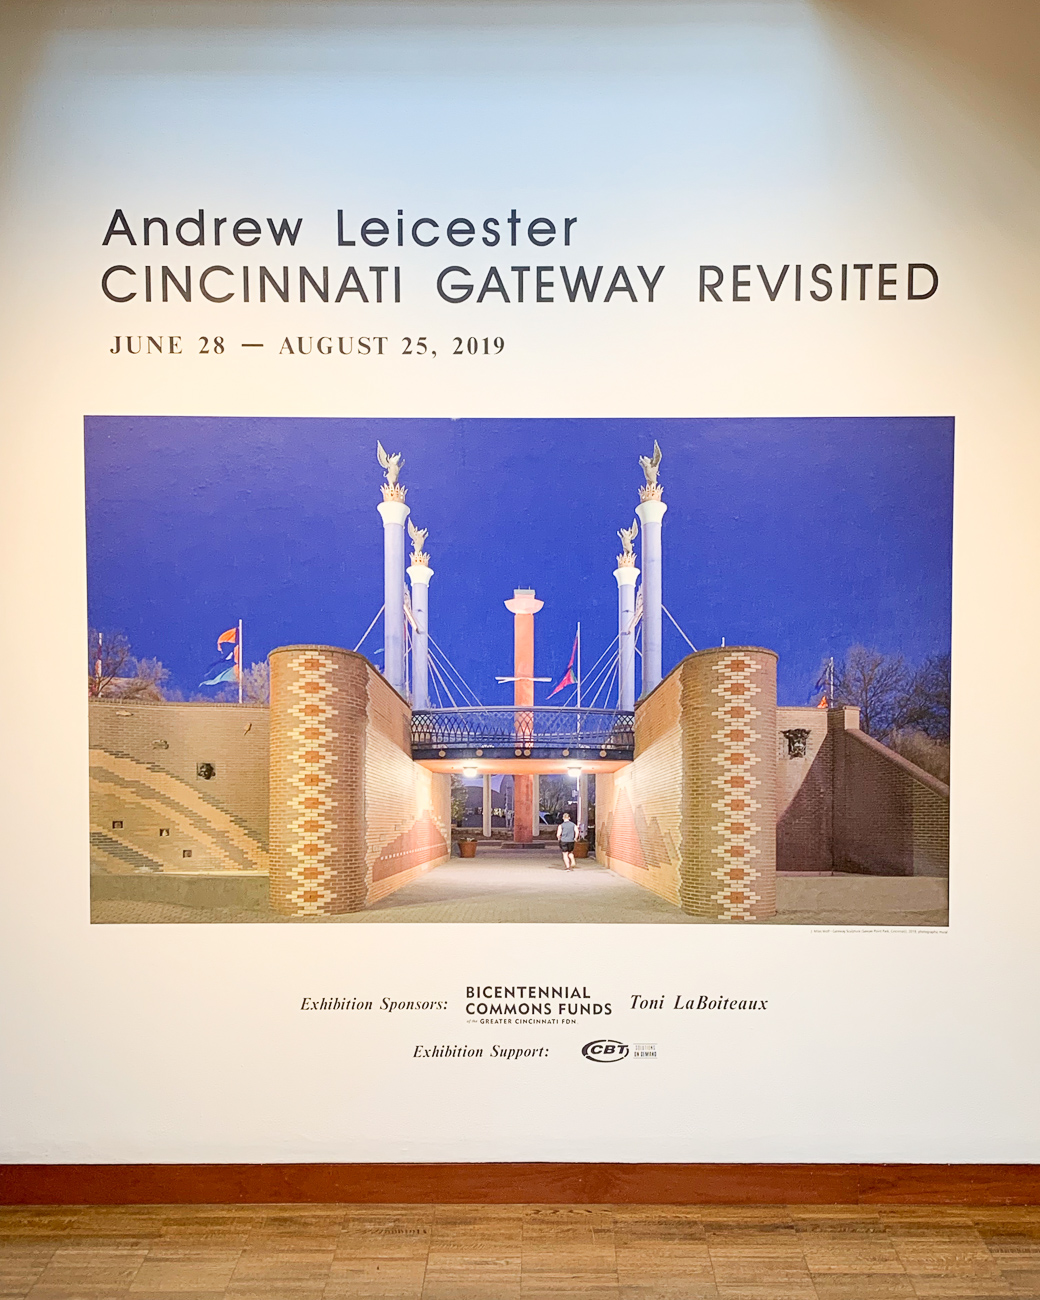 Cincinnati Gateway Revisited is free to view at the Westin Art Gallery inside the Aronoff Center for the Arts until August 25. / Image: Phil Armstrong // Published: 8.13.19